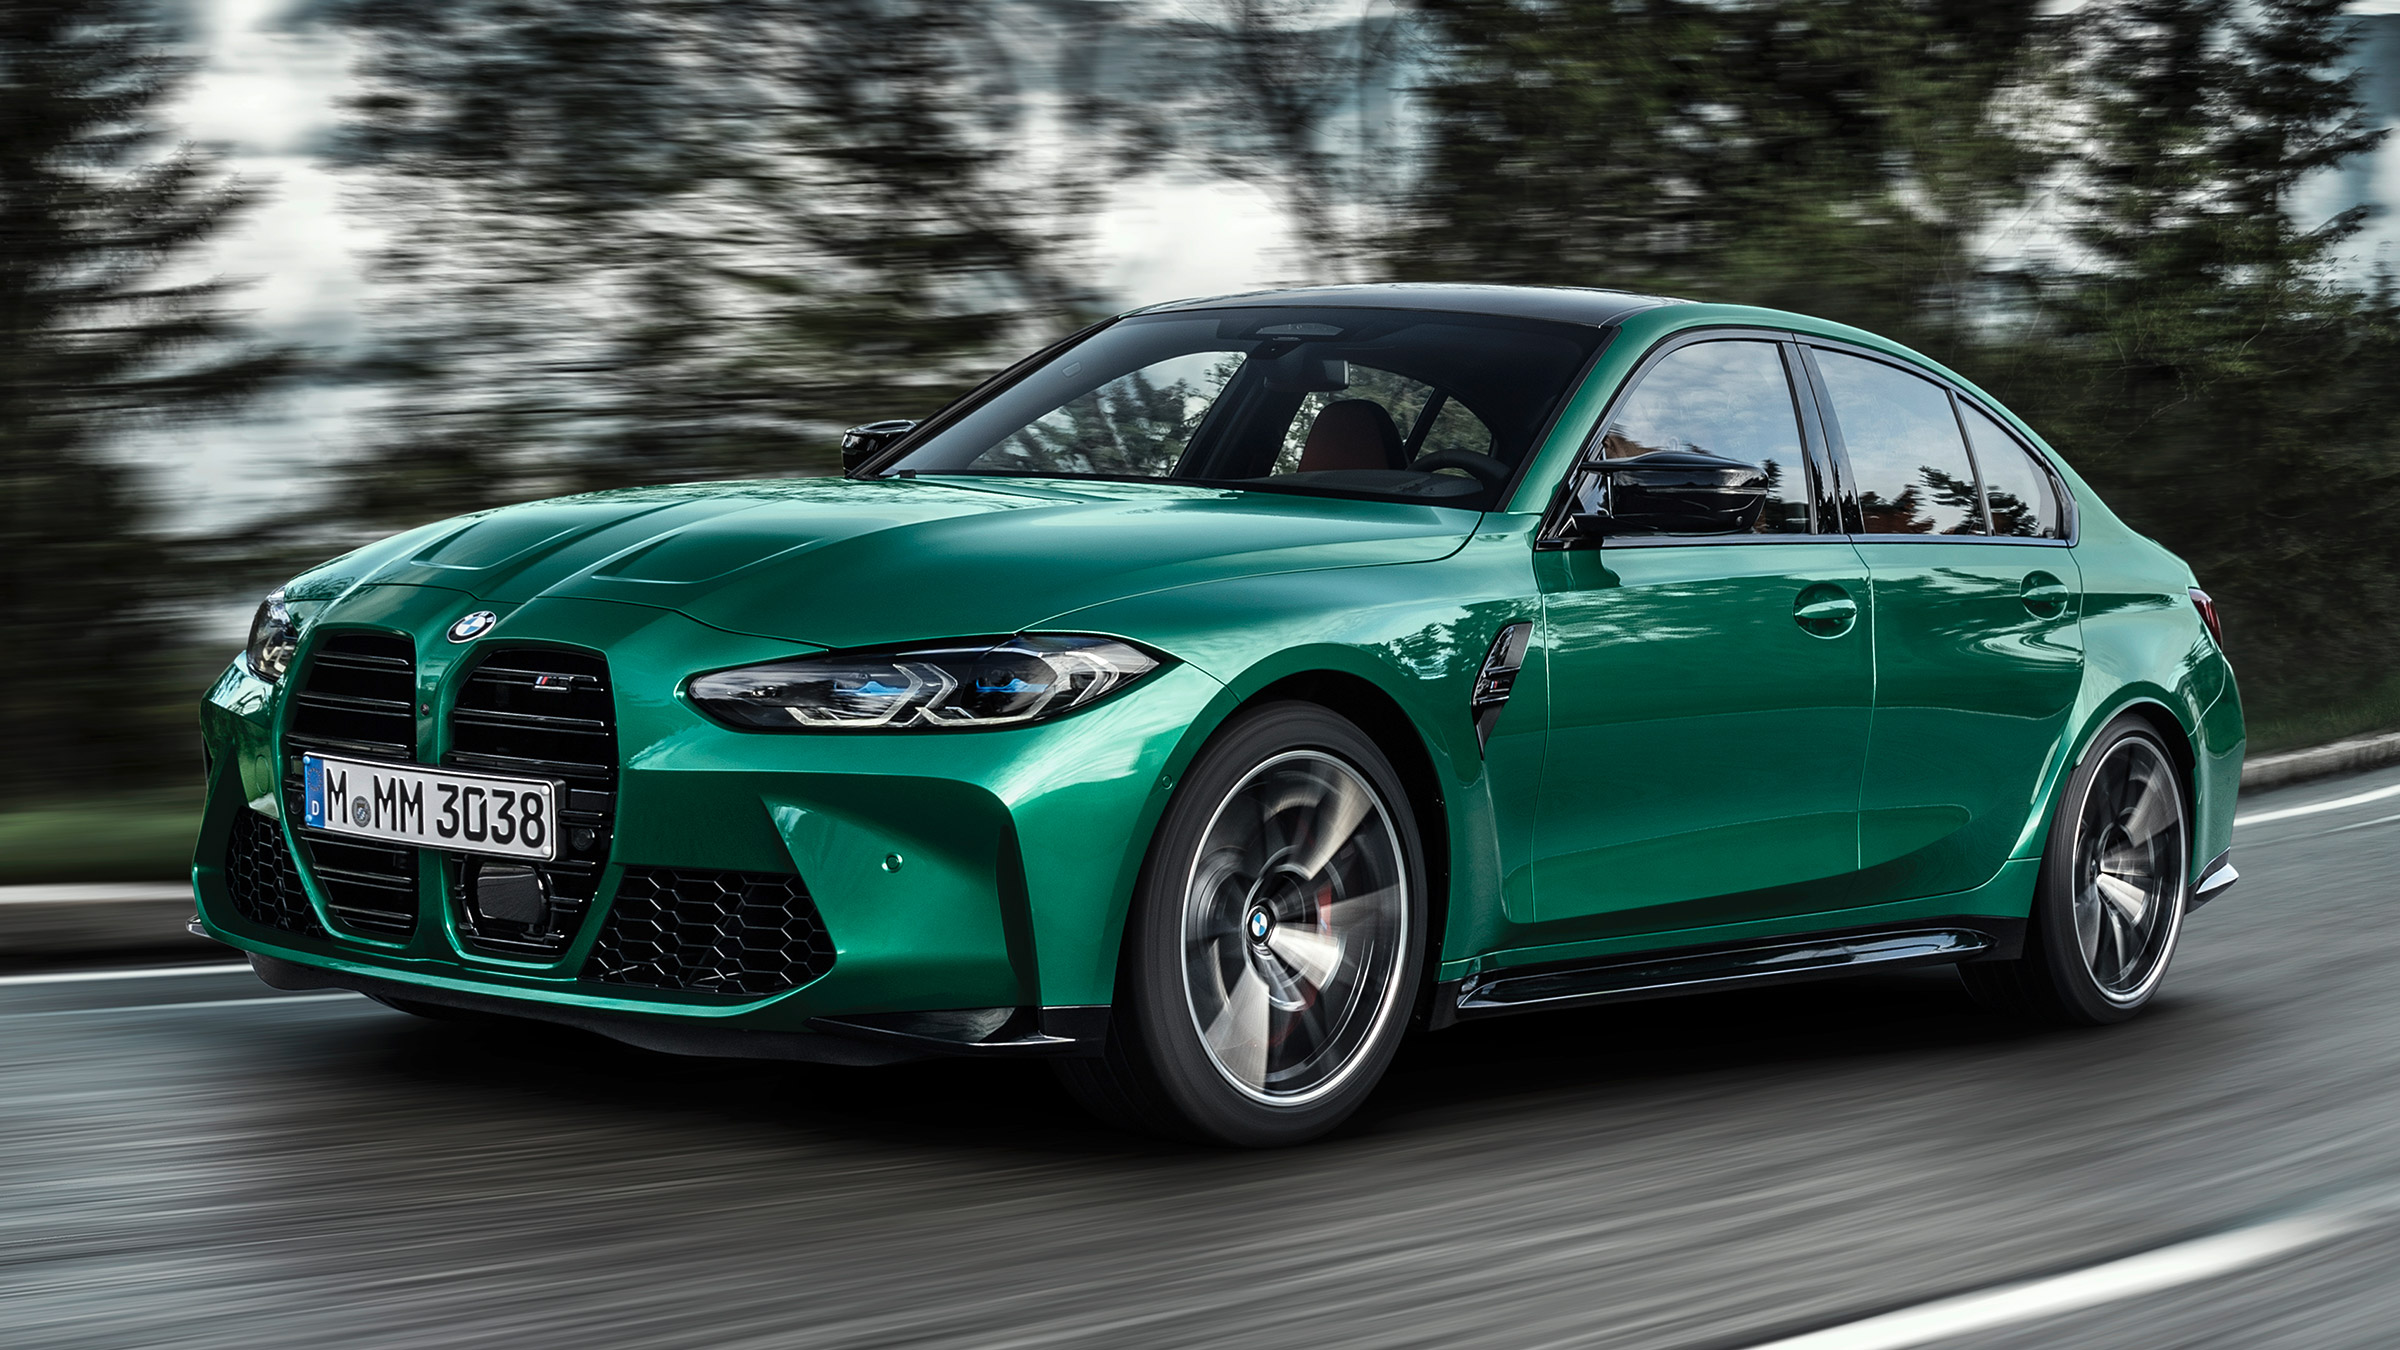 New Bmw M3 Prices Specs And 2021 Release Date For 503bhp Saloon Auto Express